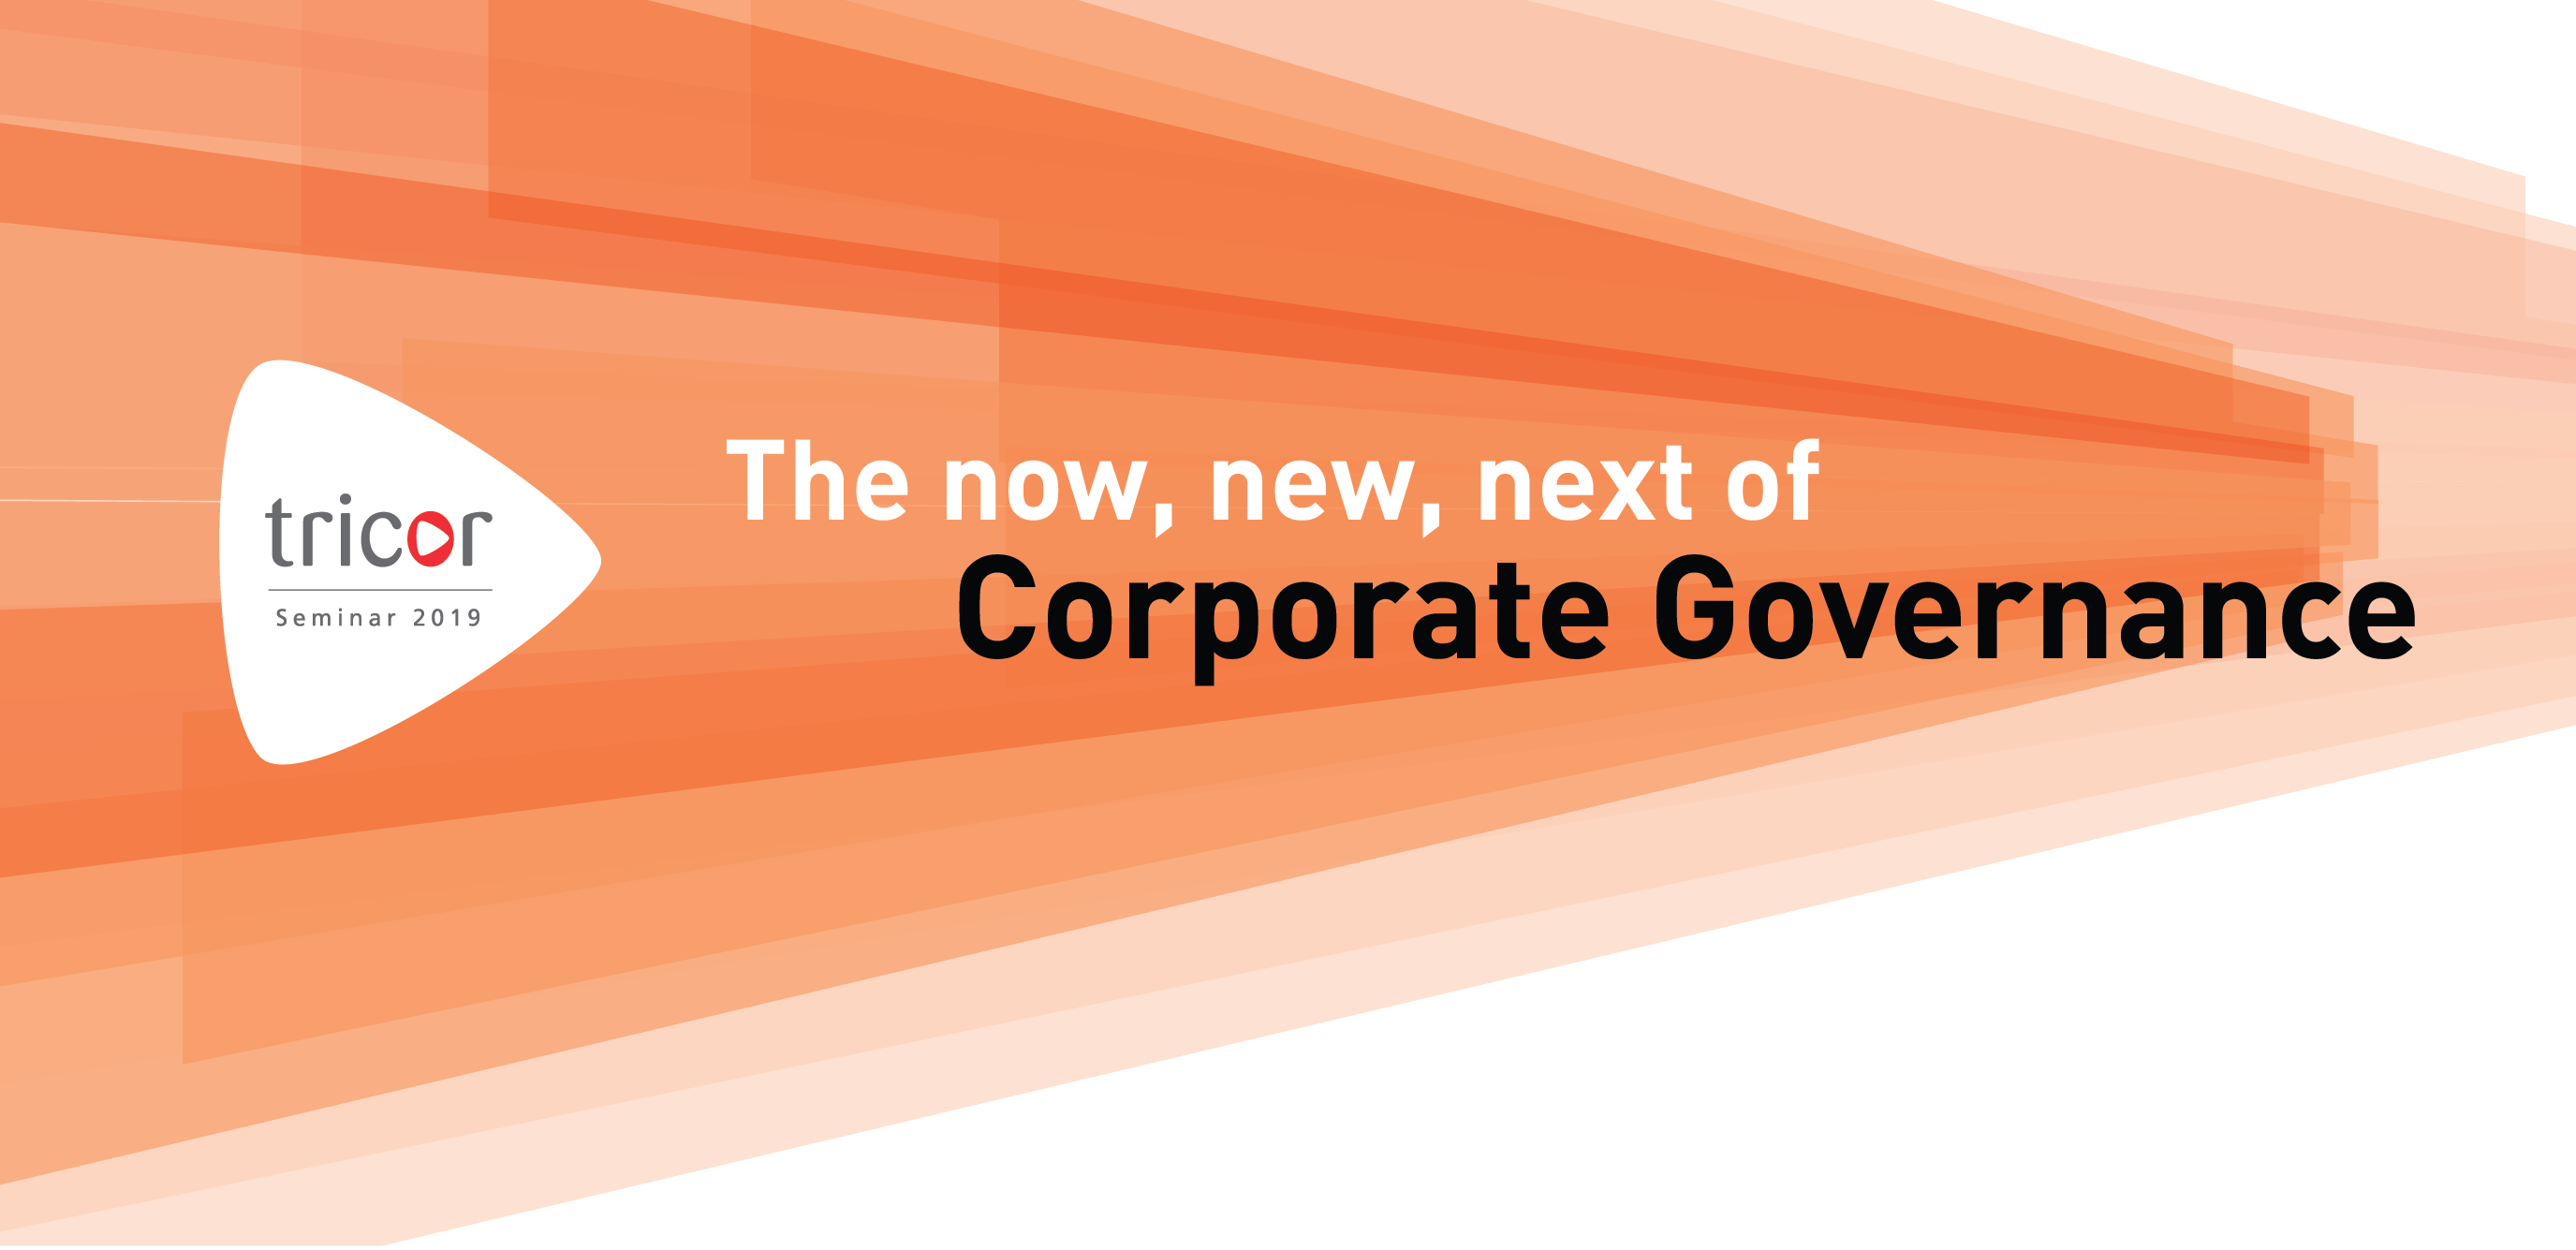 Tricor Seminar 2019: The now, new, next of Corporate Governance